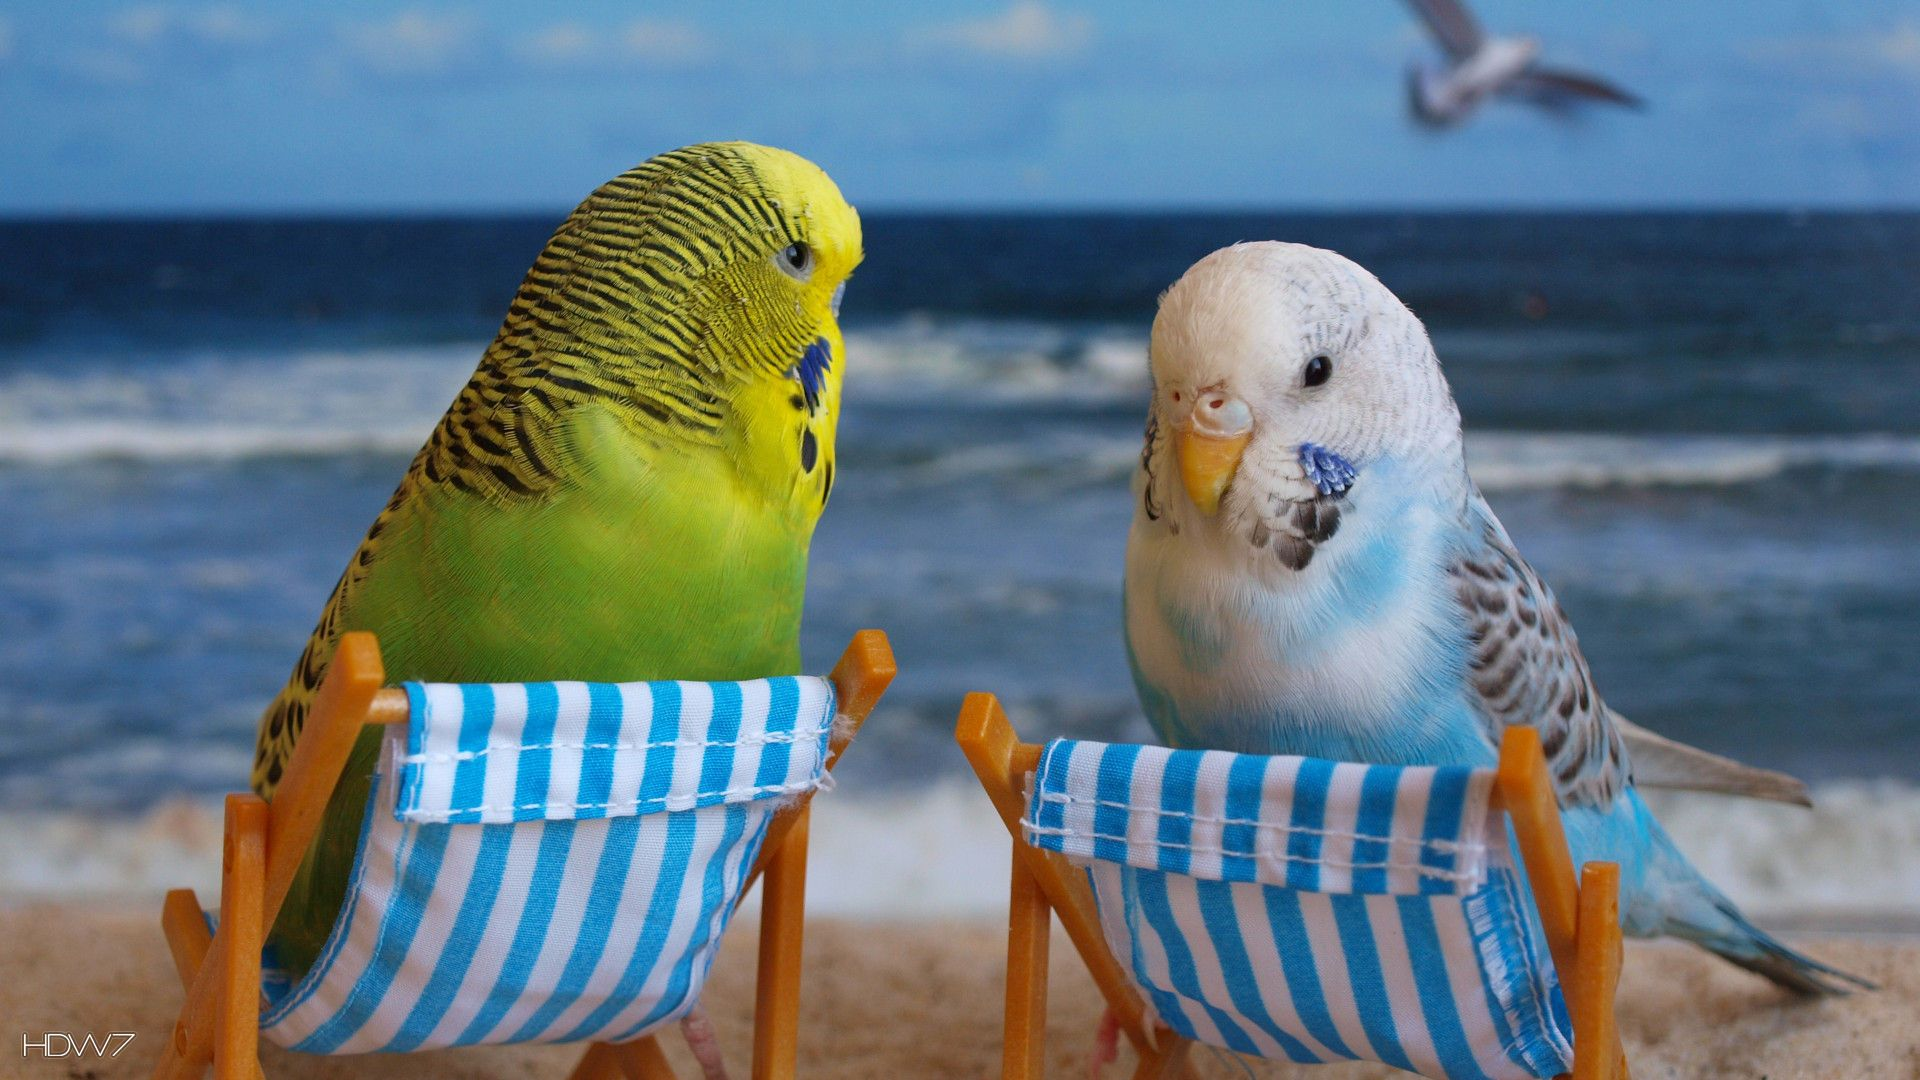 budgie wallpaper birds hd backgrounds Lustige papageien